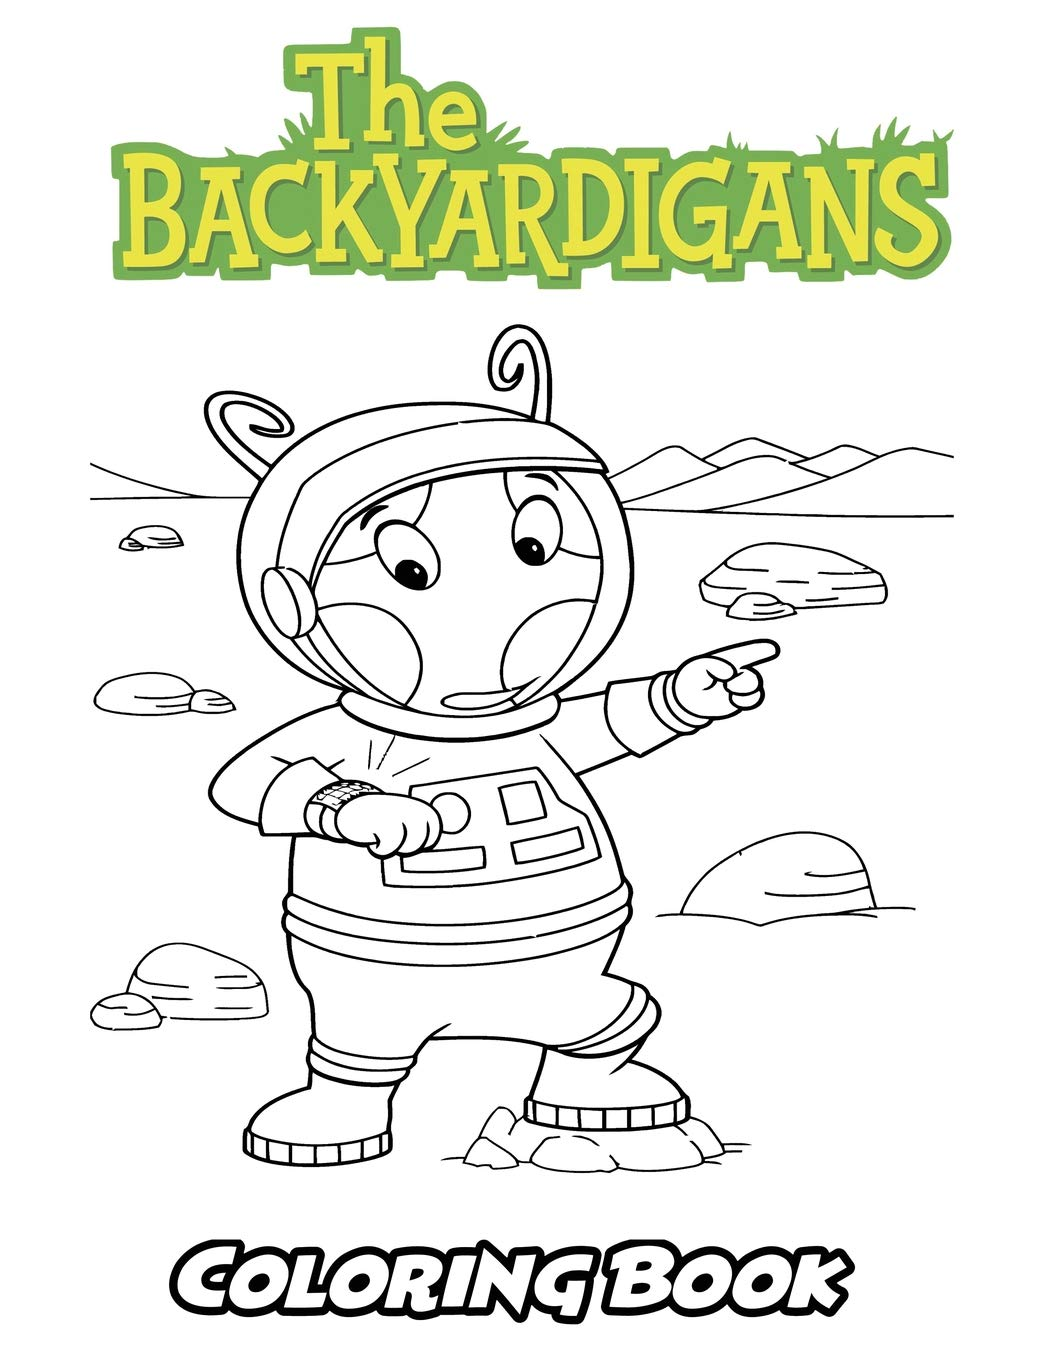 Amazon.com: Backyardigans Coloring Book: Coloring Book for ...